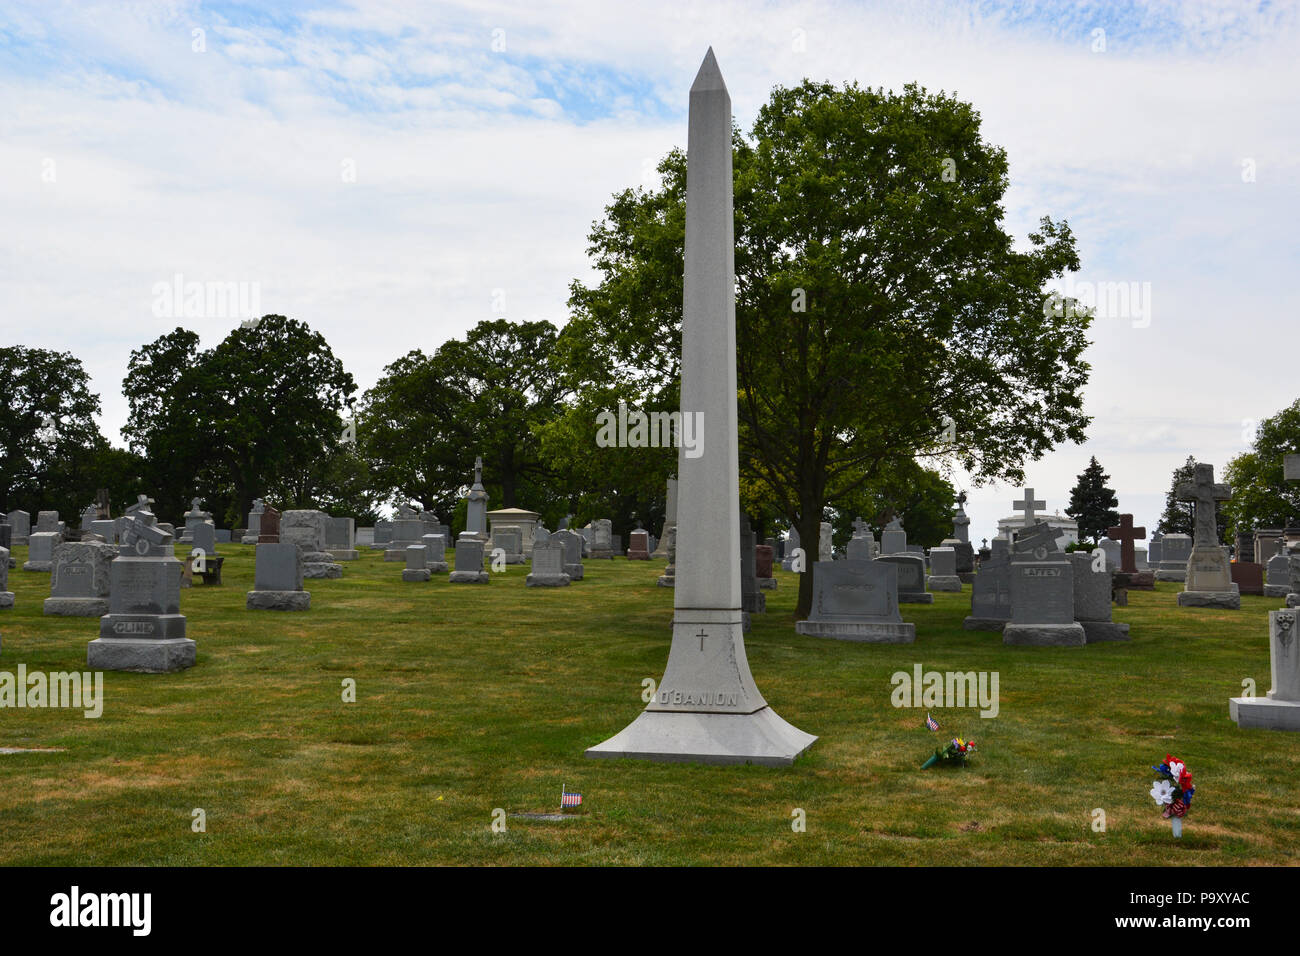 The O'Banion family marker at the Mount Carmel Cemetery in suburban Hillside, where Dean (Dion) O'Banion and members of his family are buried. Stock Photo